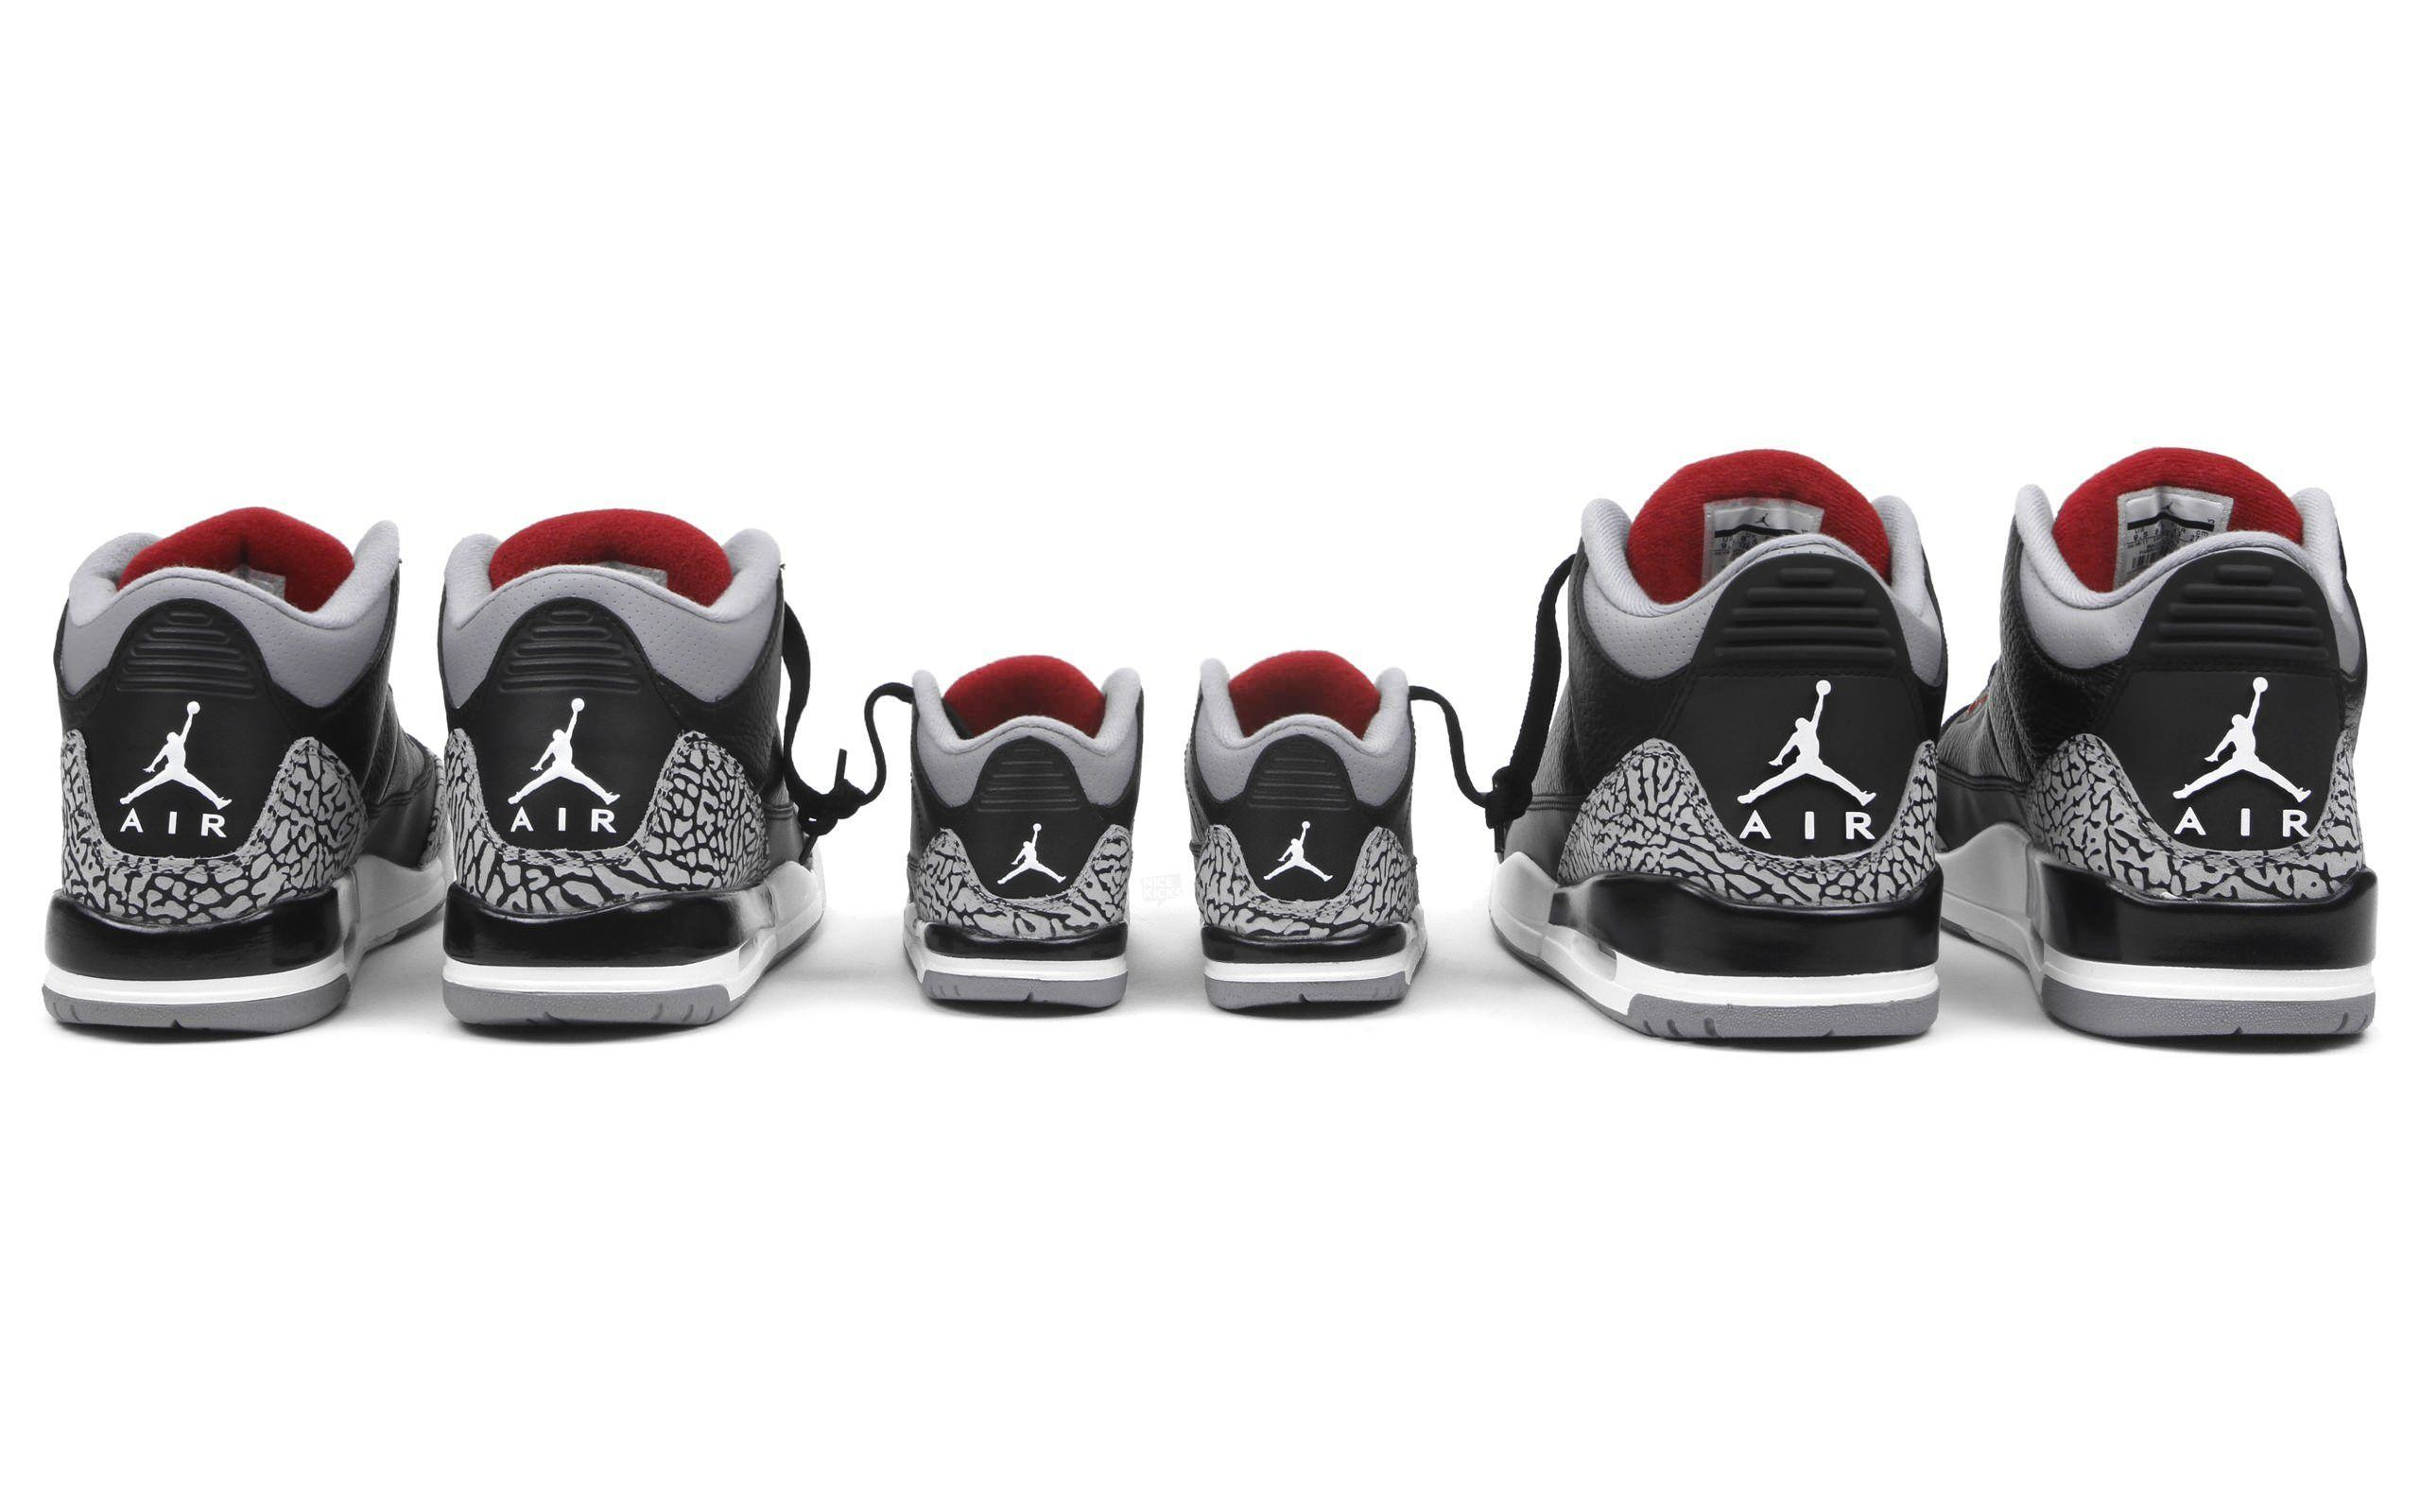 Res: 2560x1600, Nike Air Jordan Wallpapers